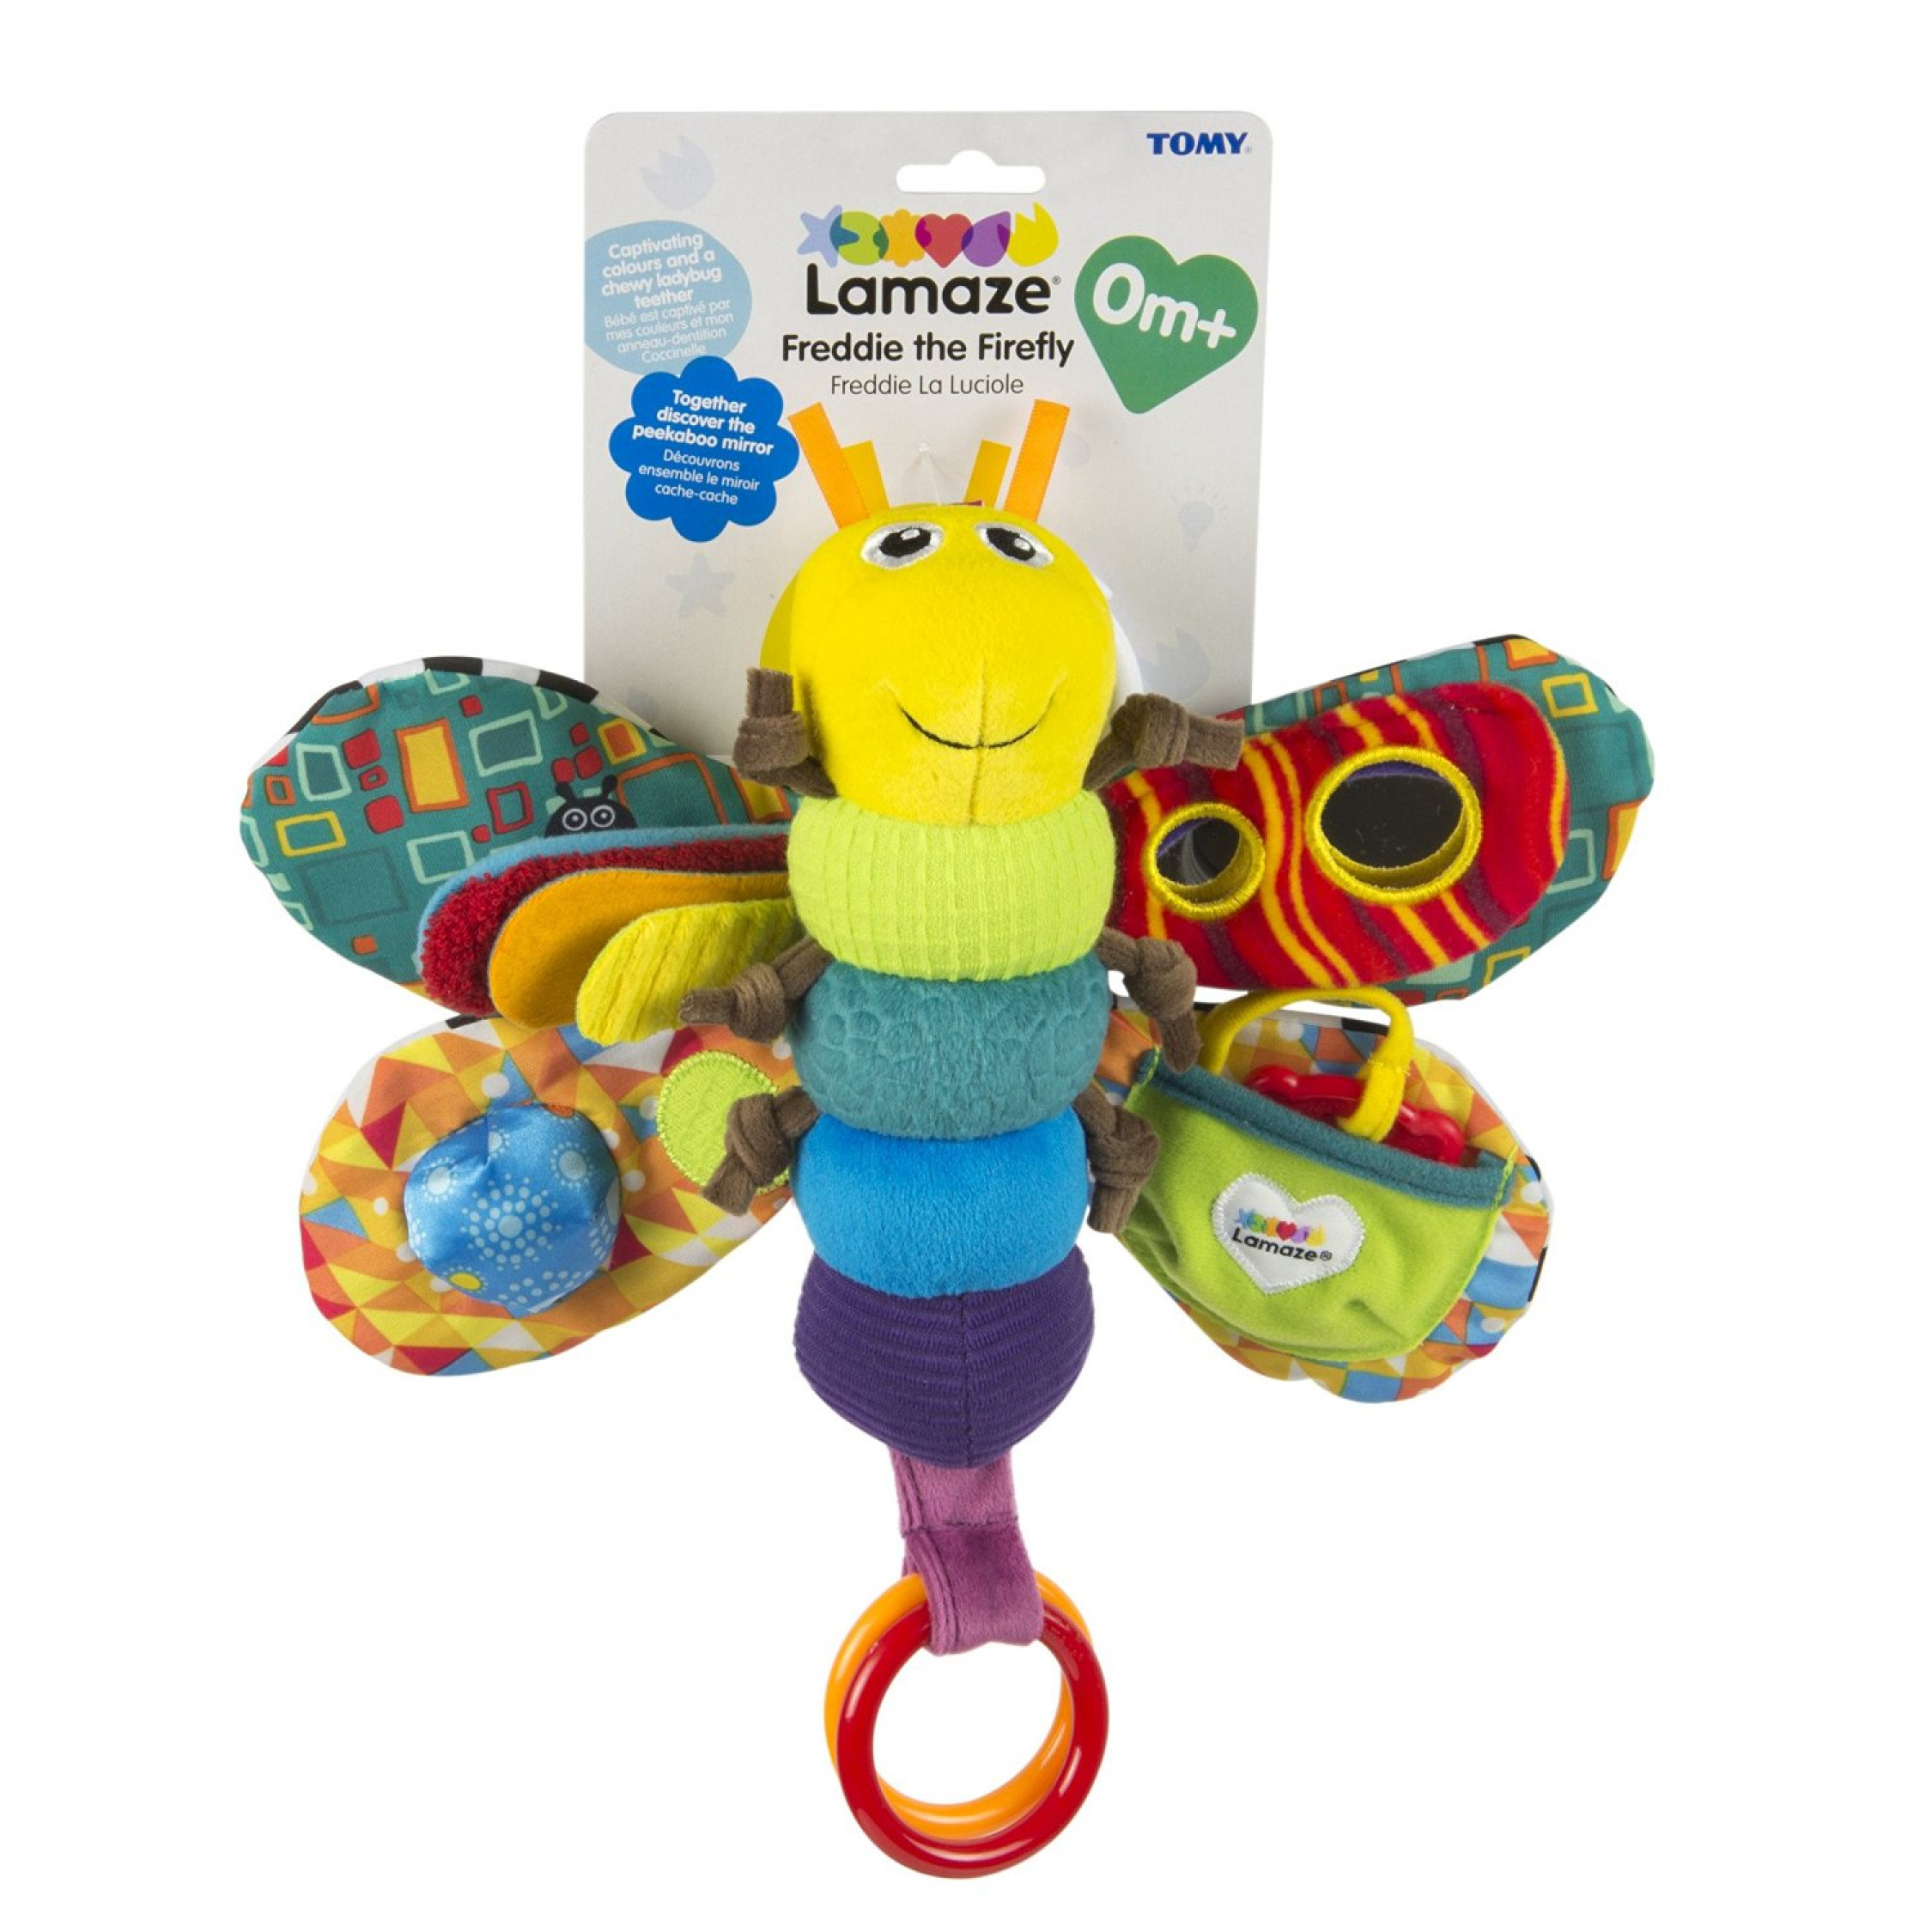 Lamaze Freddie Firefly Toy Gift Soft Busy Wings Clinking